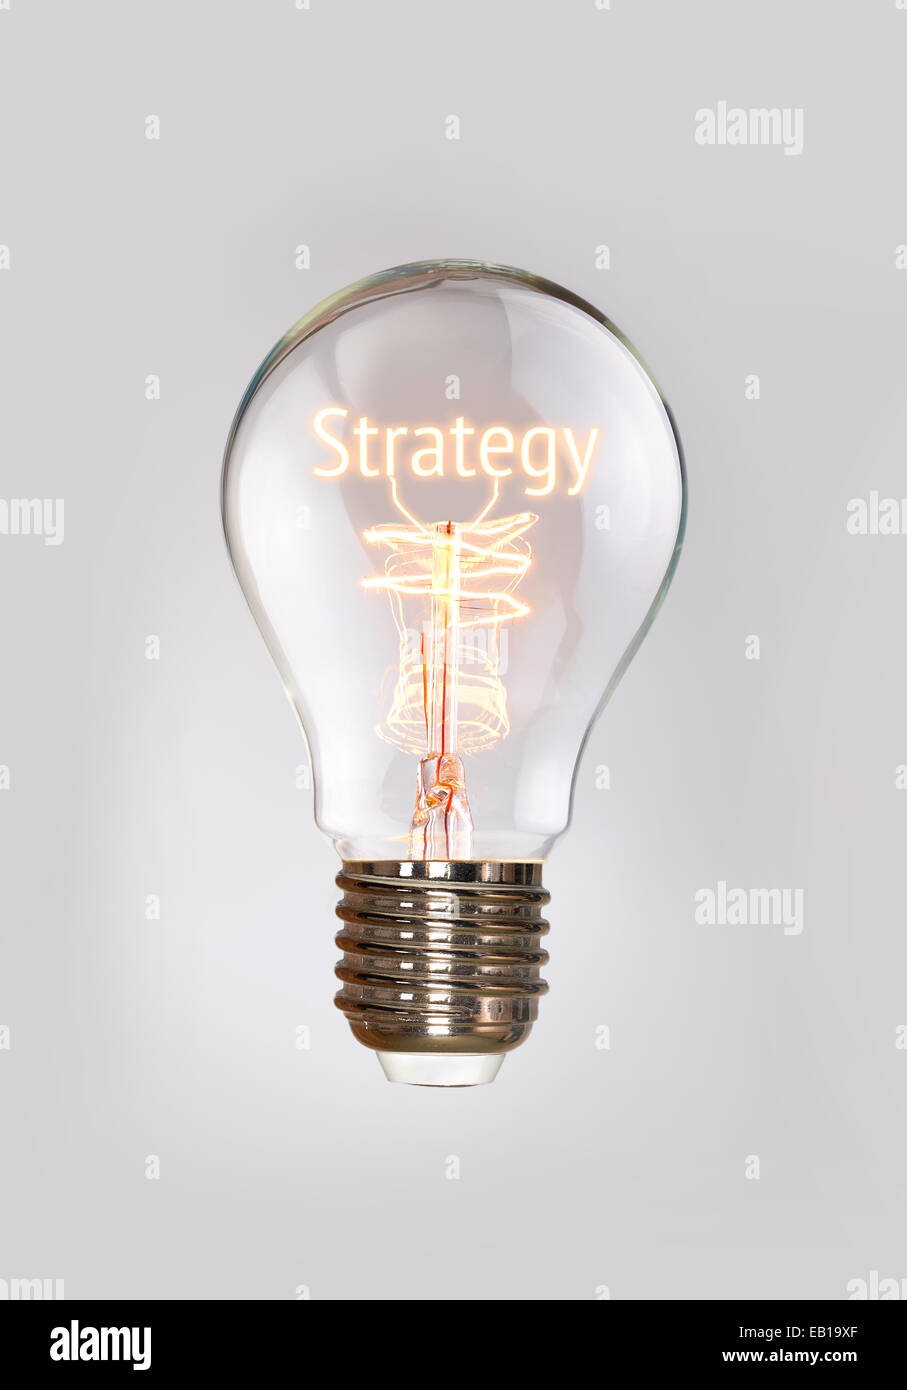 Strategy concept in a filament lightbulb. - Stock Image